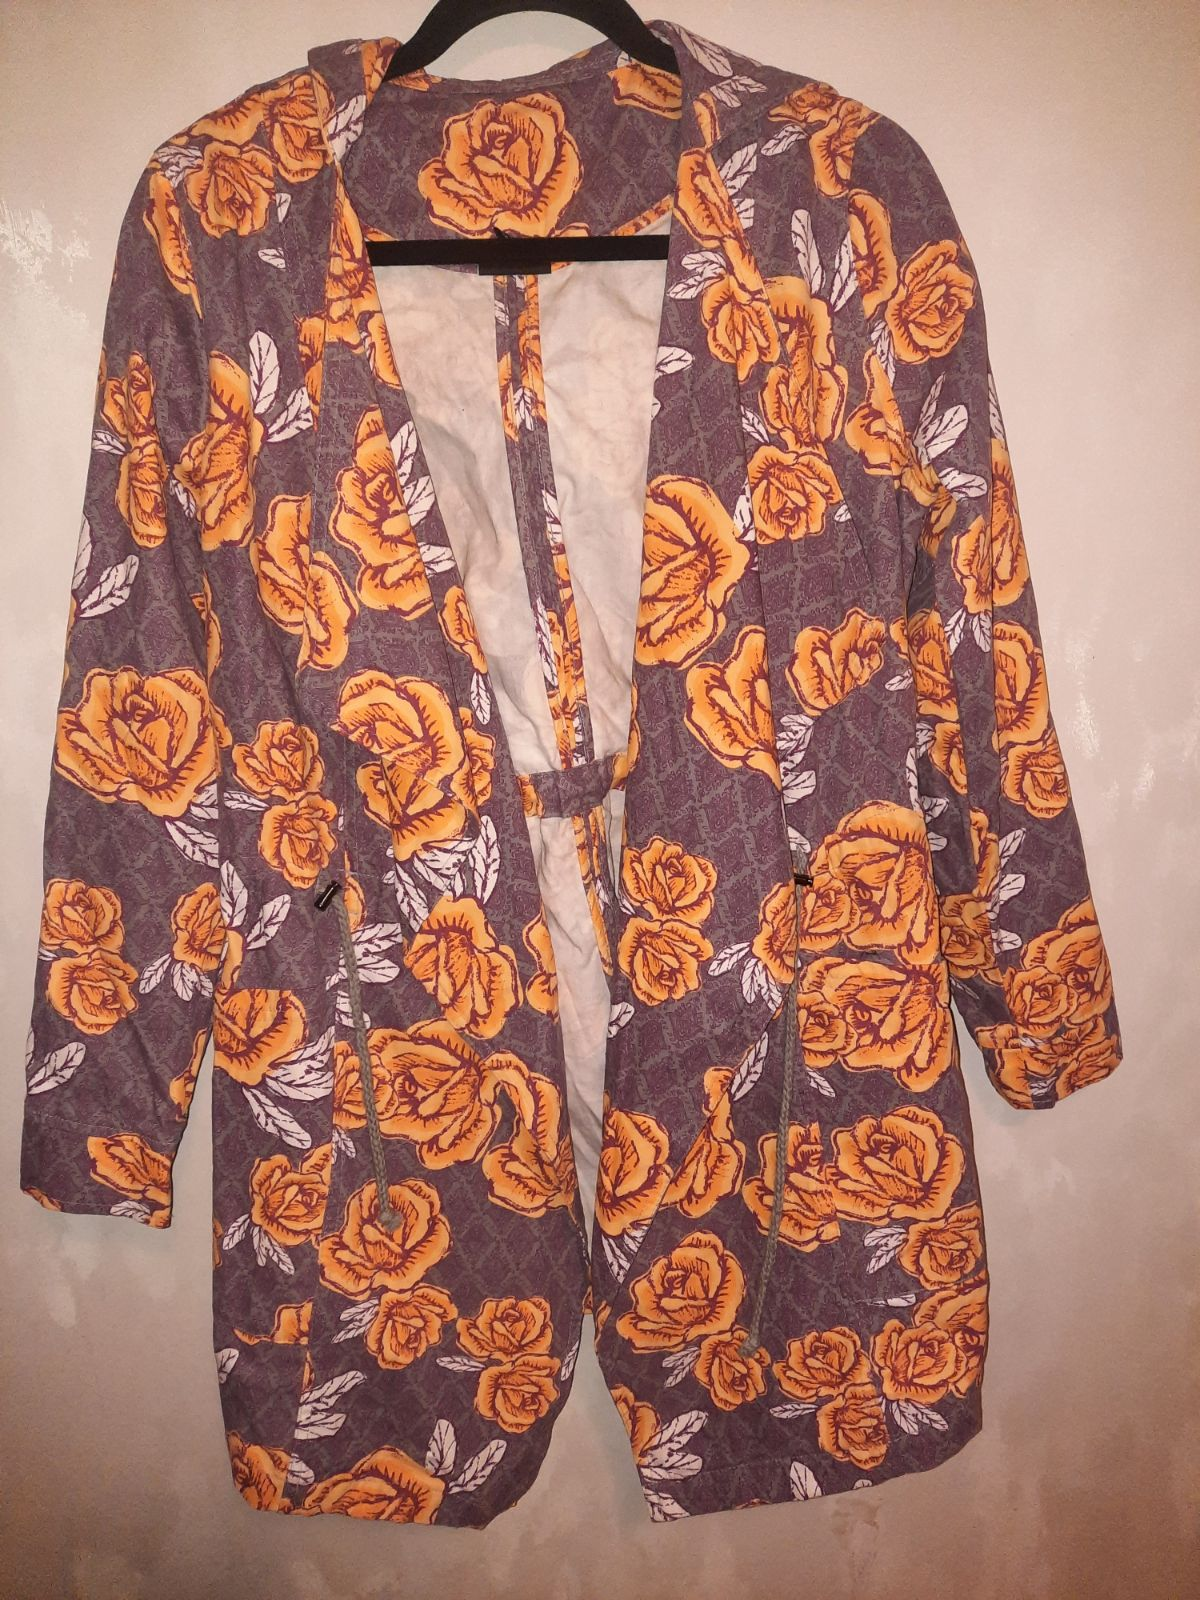 Floral LuLaRoe hooded tie jacket